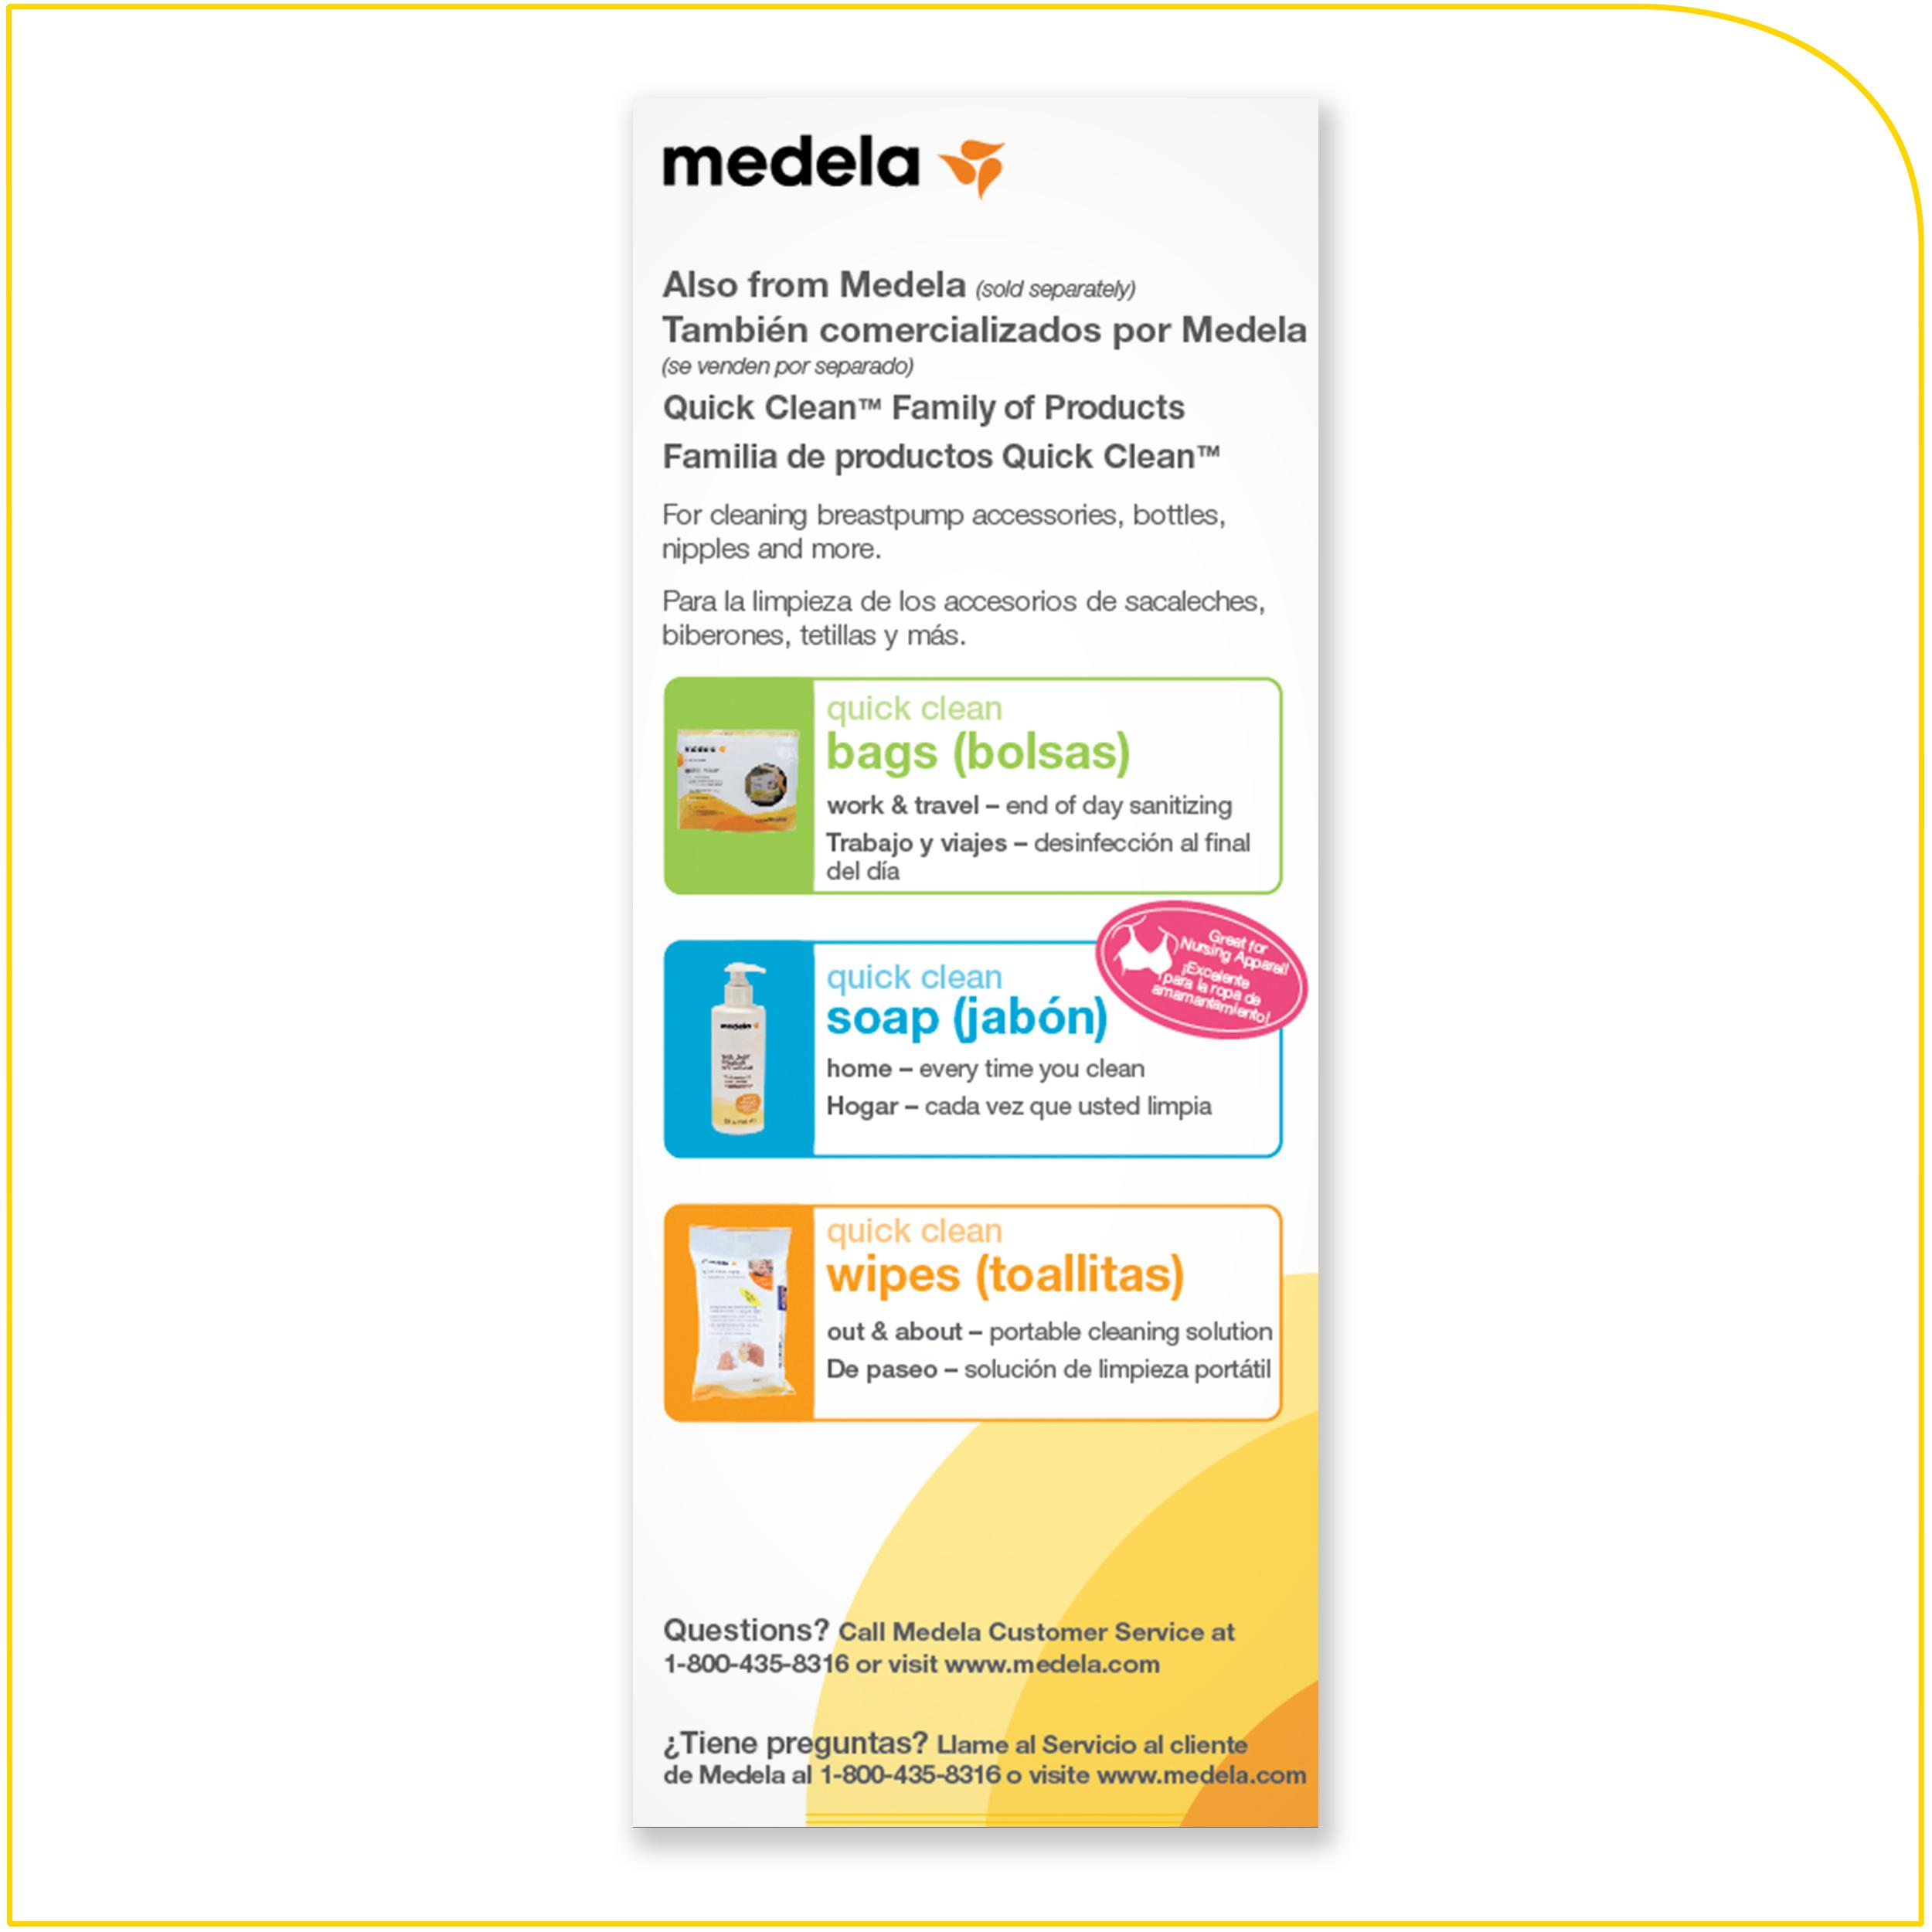 medela harmony manual breast pump reviews